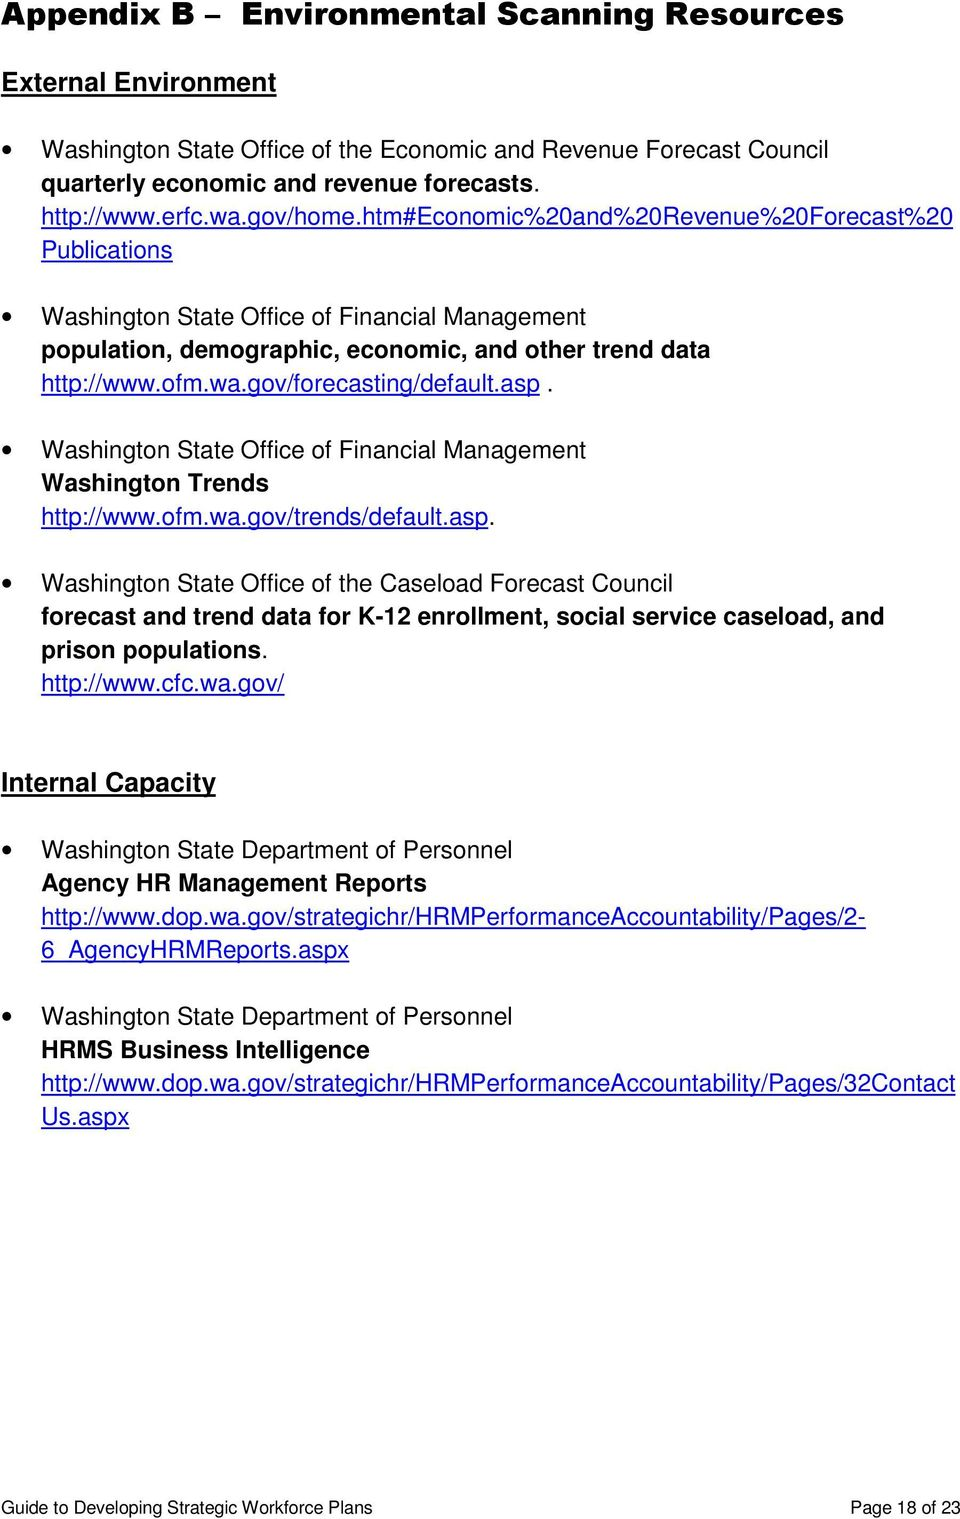 gov/forecasting/default.asp. Washington State Office of Financial Management Washington Trends http://www.ofm.wa.gov/trends/default.asp. Washington State Office of the Caseload Forecast Council forecast and trend data for K-12 enrollment, social service caseload, and prison populations.